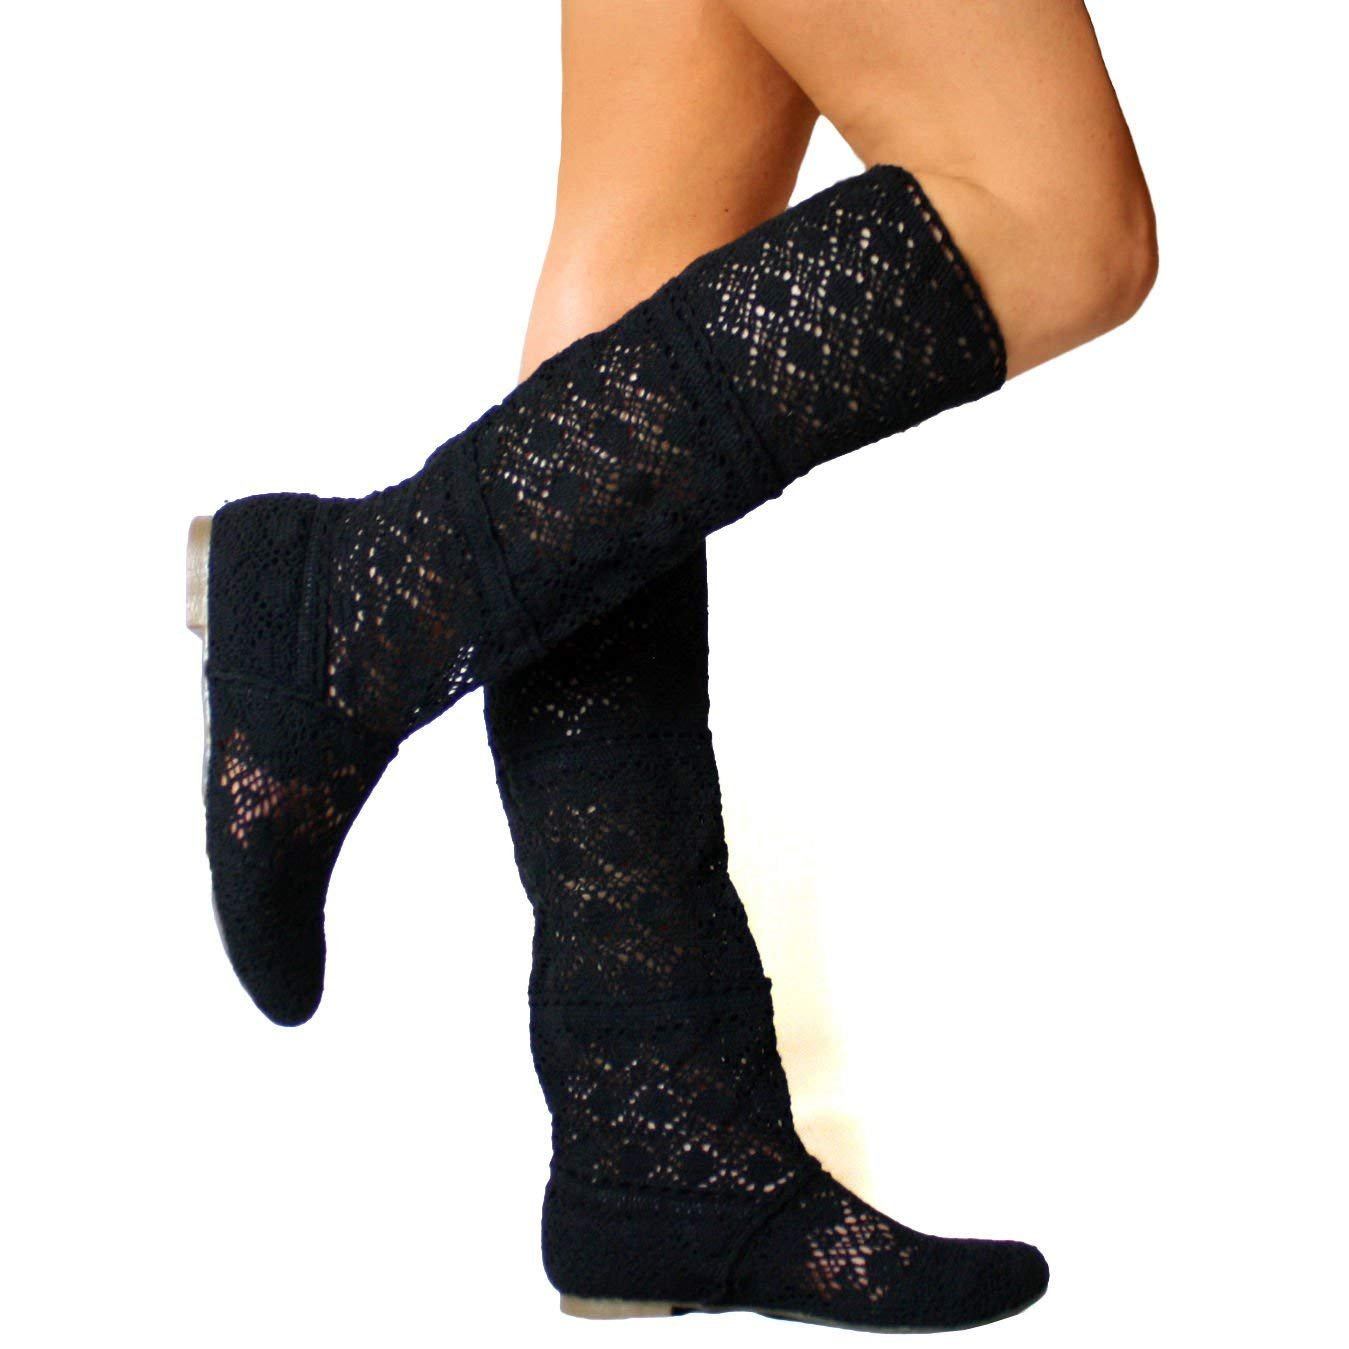 Maybest Womens Summer Boots Flat Shoes Elegant Gladiator Embroidery Slip-On Shoes Fashion Mesh High Boots Black 7